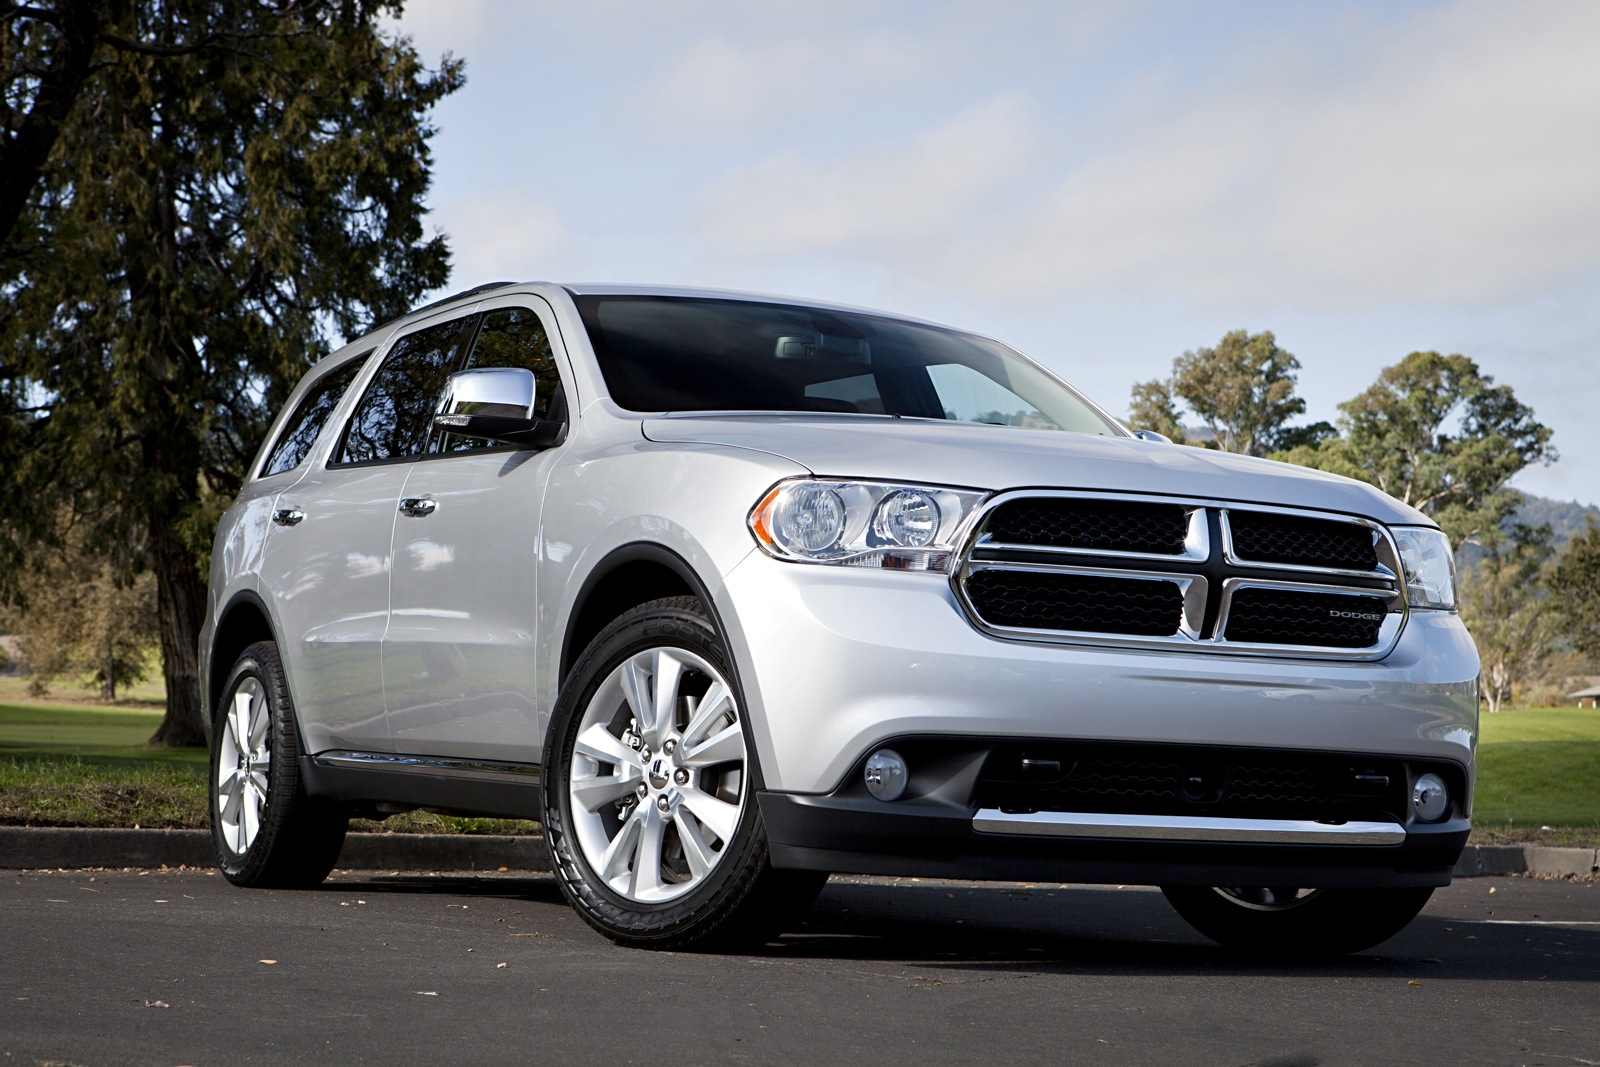 2013 Dodge Durango Review Ratings Specs Prices And